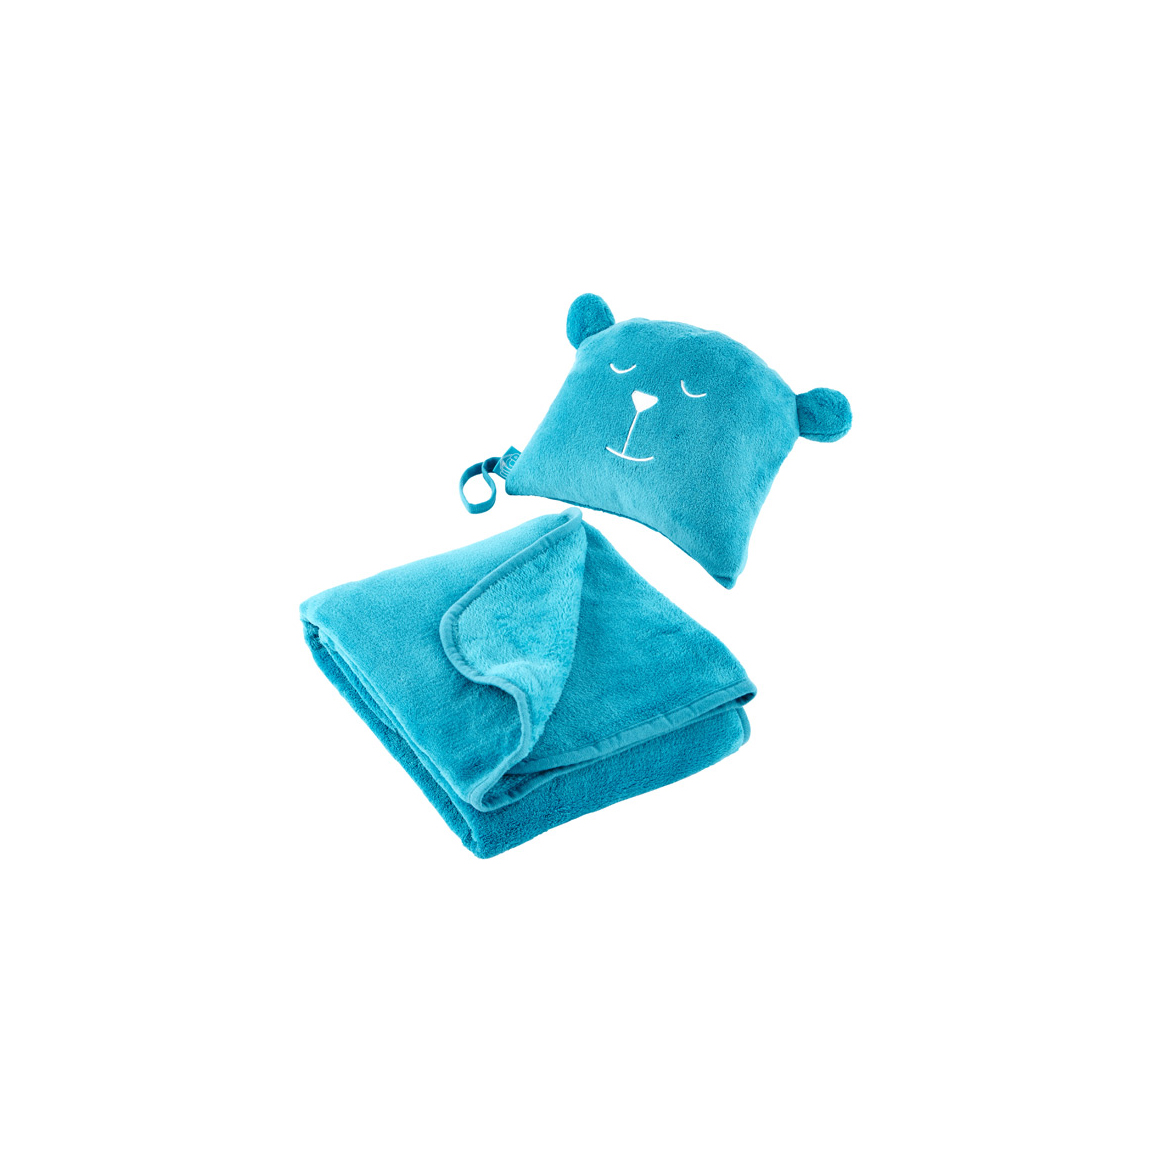 Teal Undercover Bear Travel Blanket and Pillow